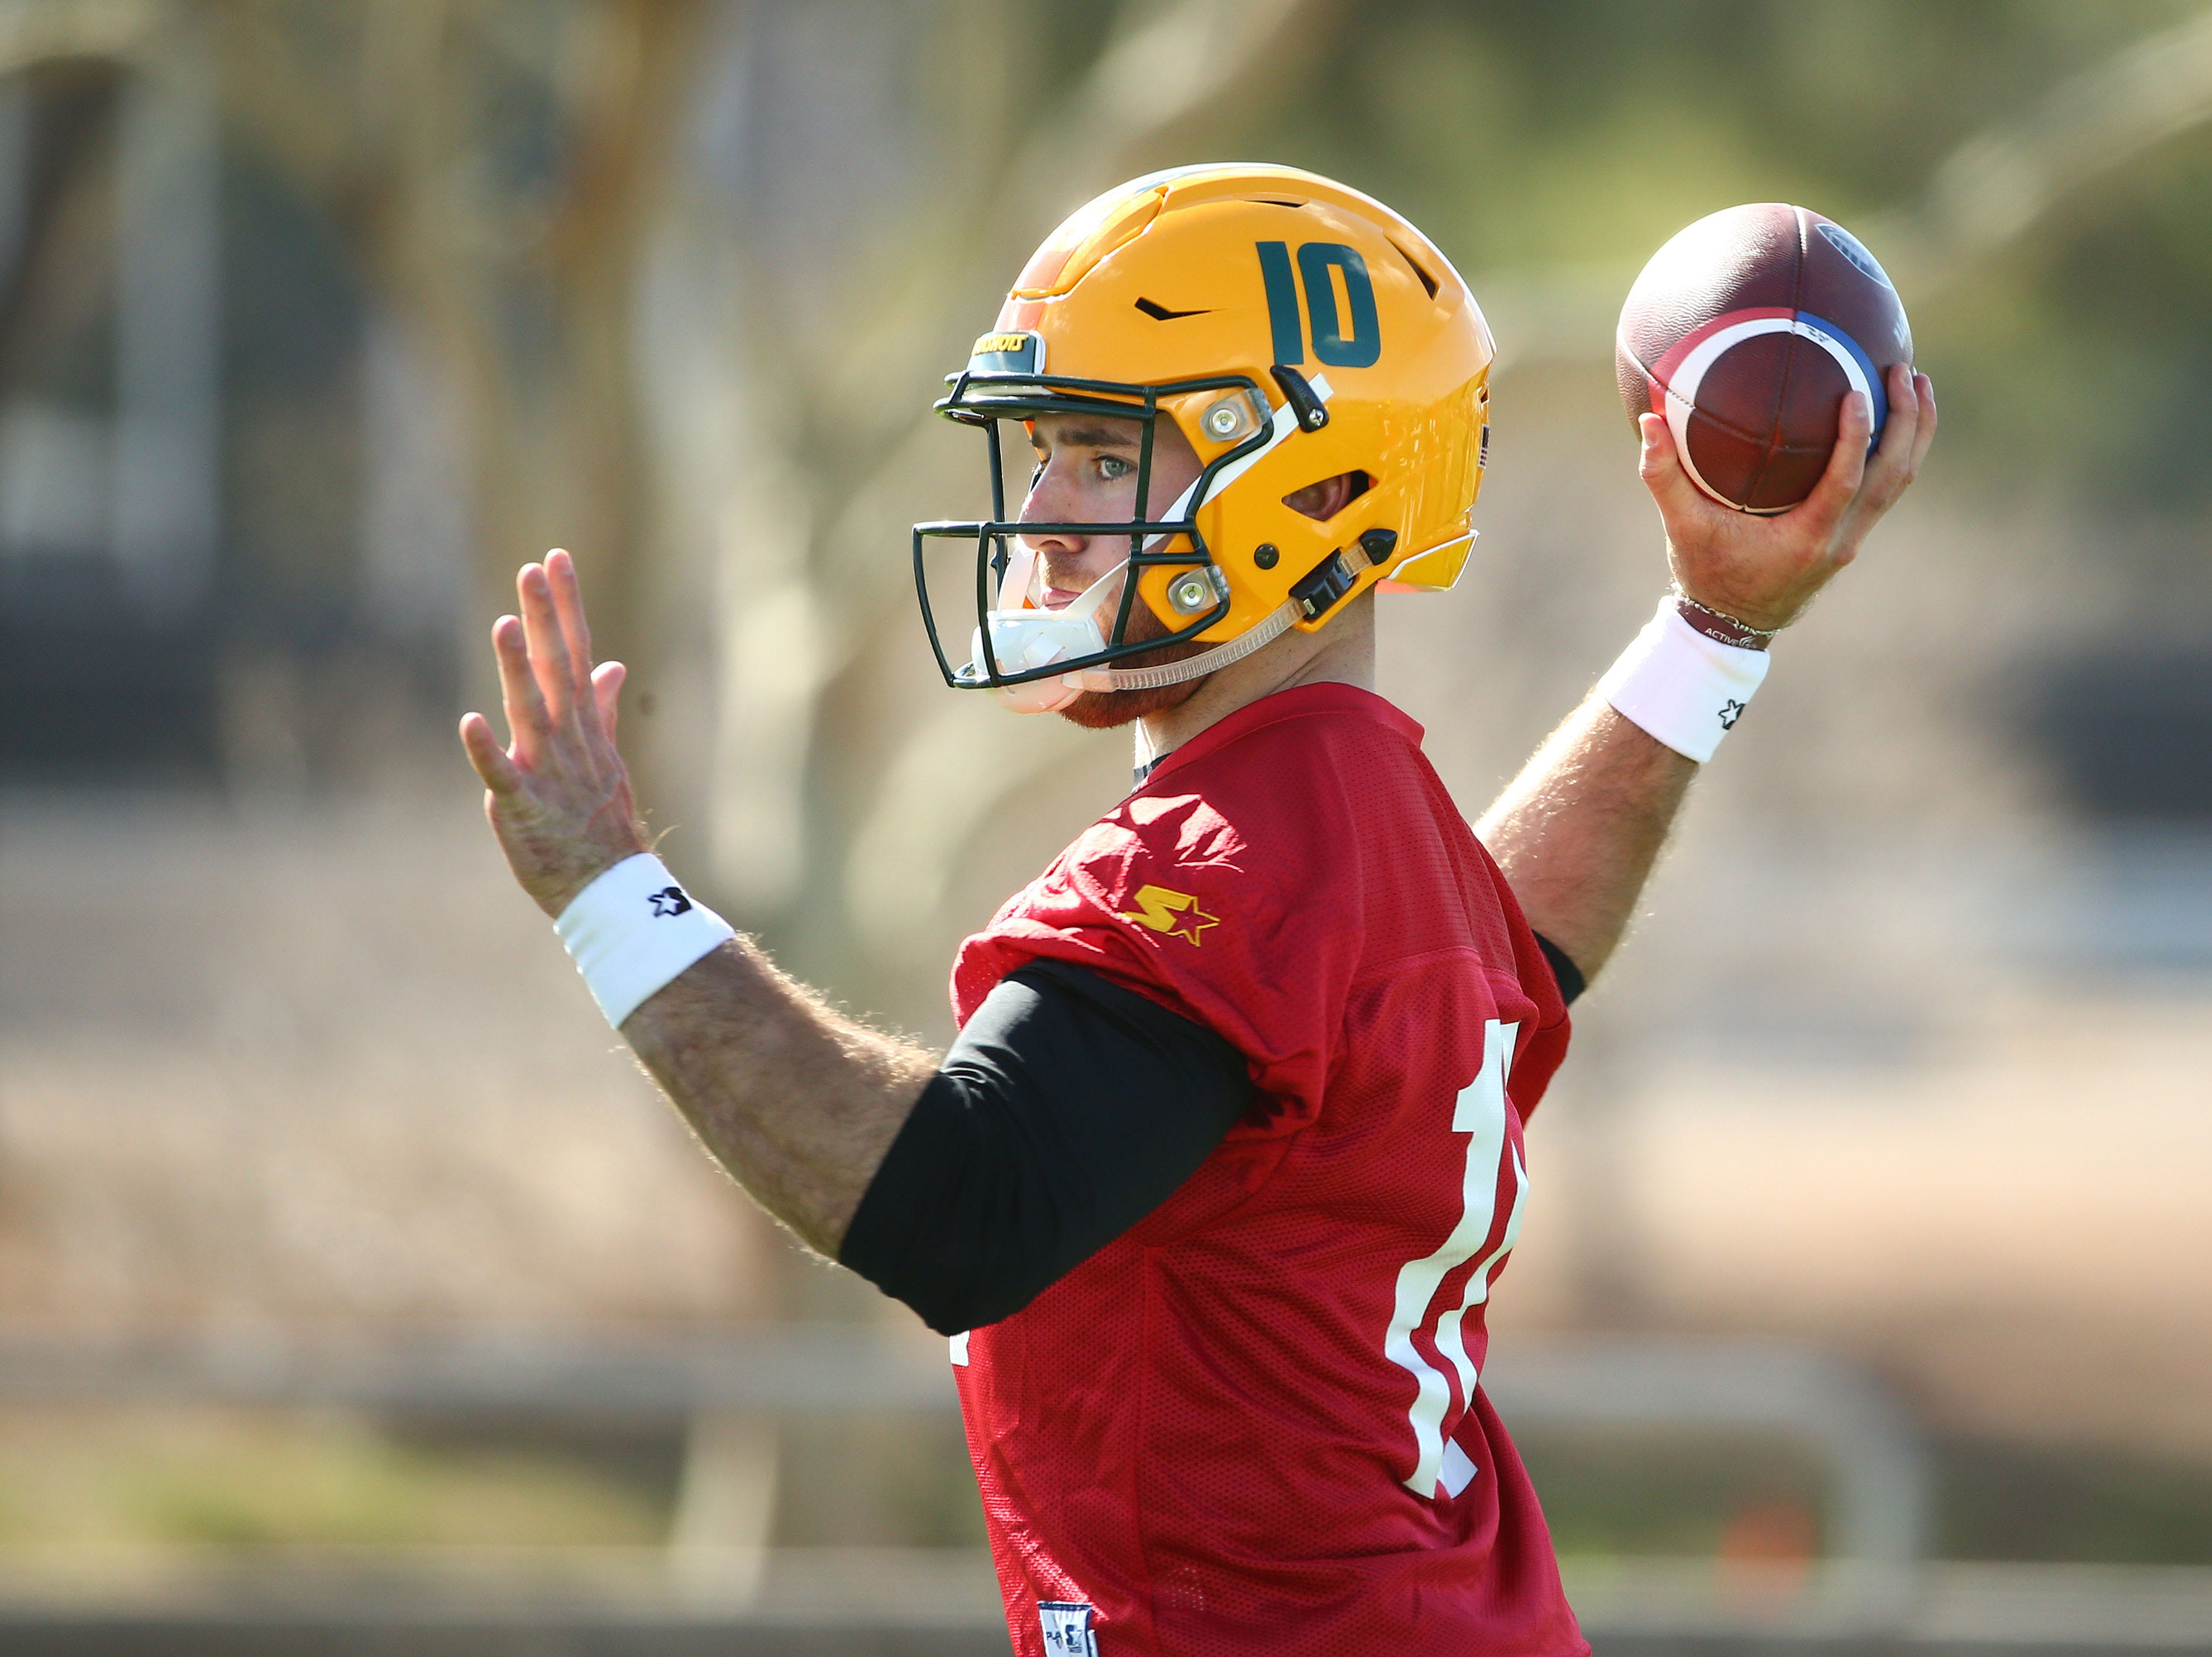 Hotshots starting quarterback Trevor Knight throws the ball during a practice Feb. 5 at State Farm Stadium.